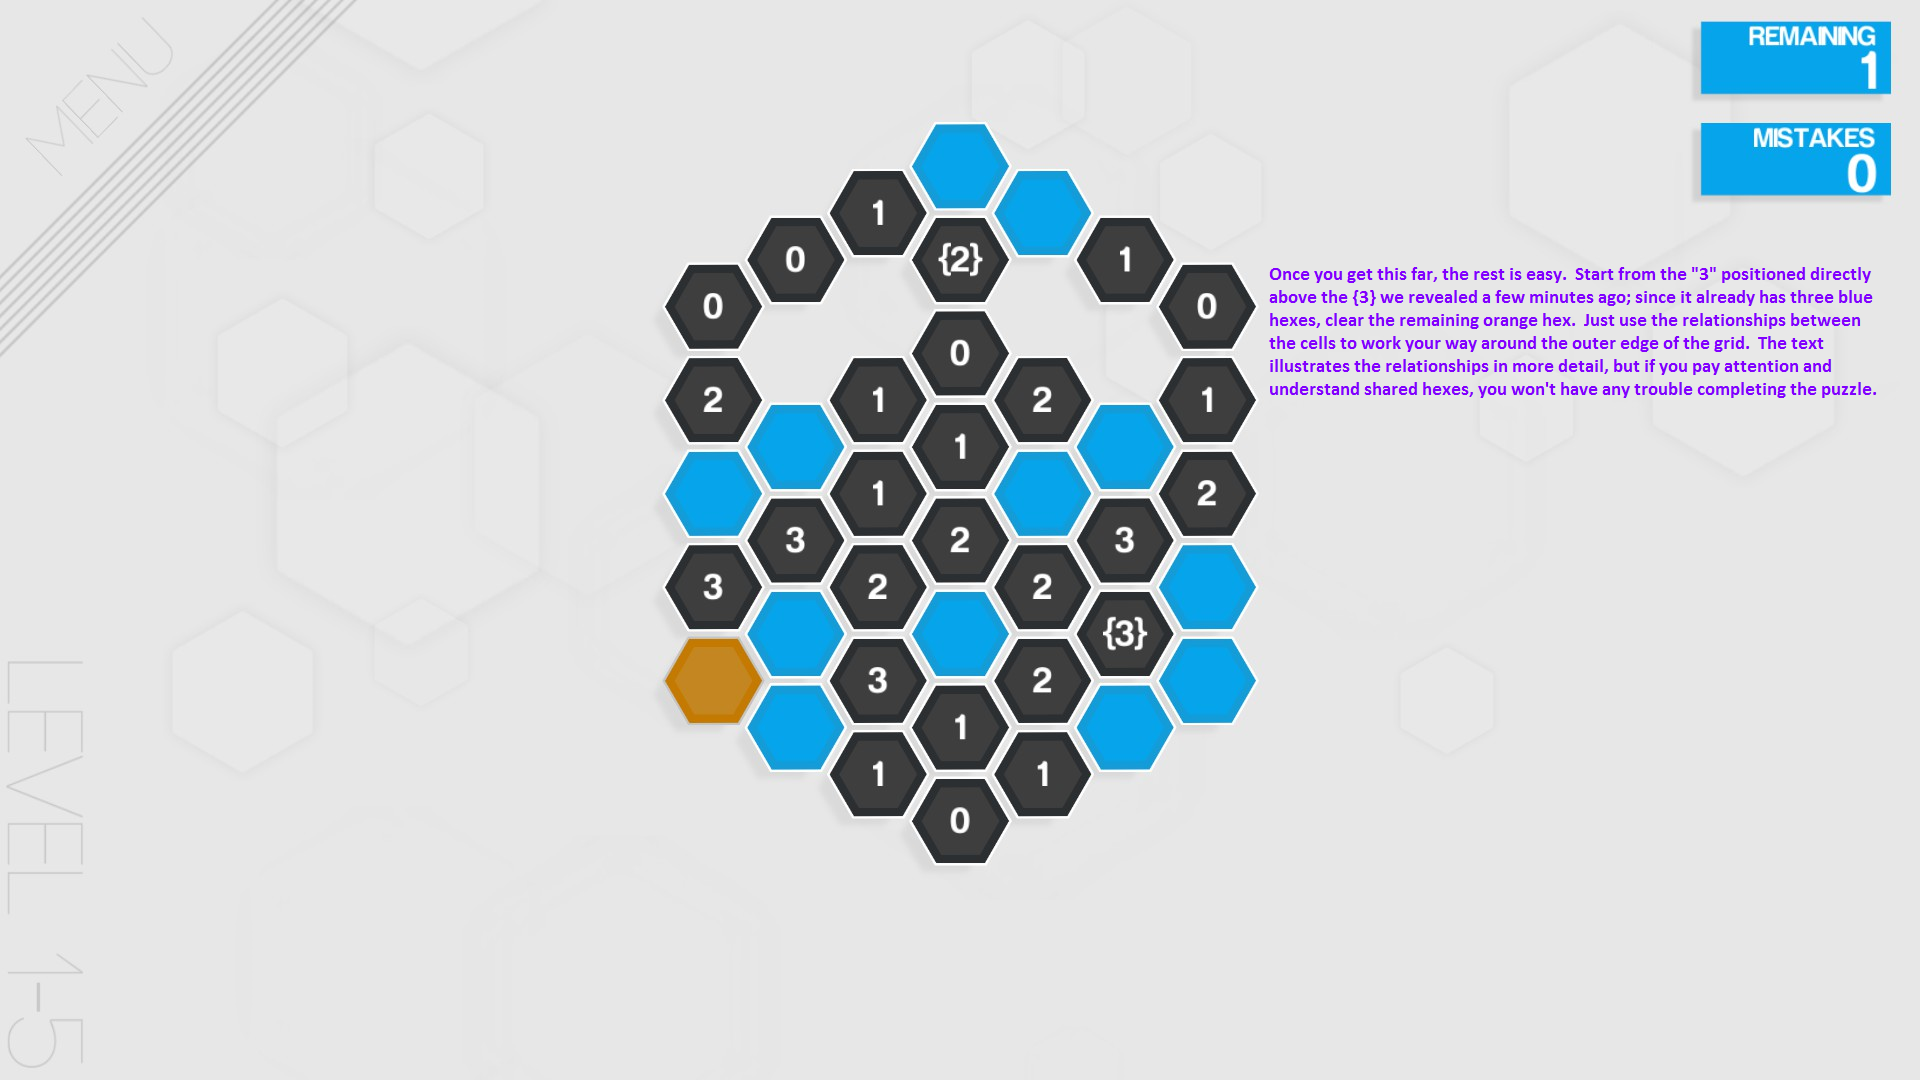 Steam munity Guide Hexcells Infinite No Mistake